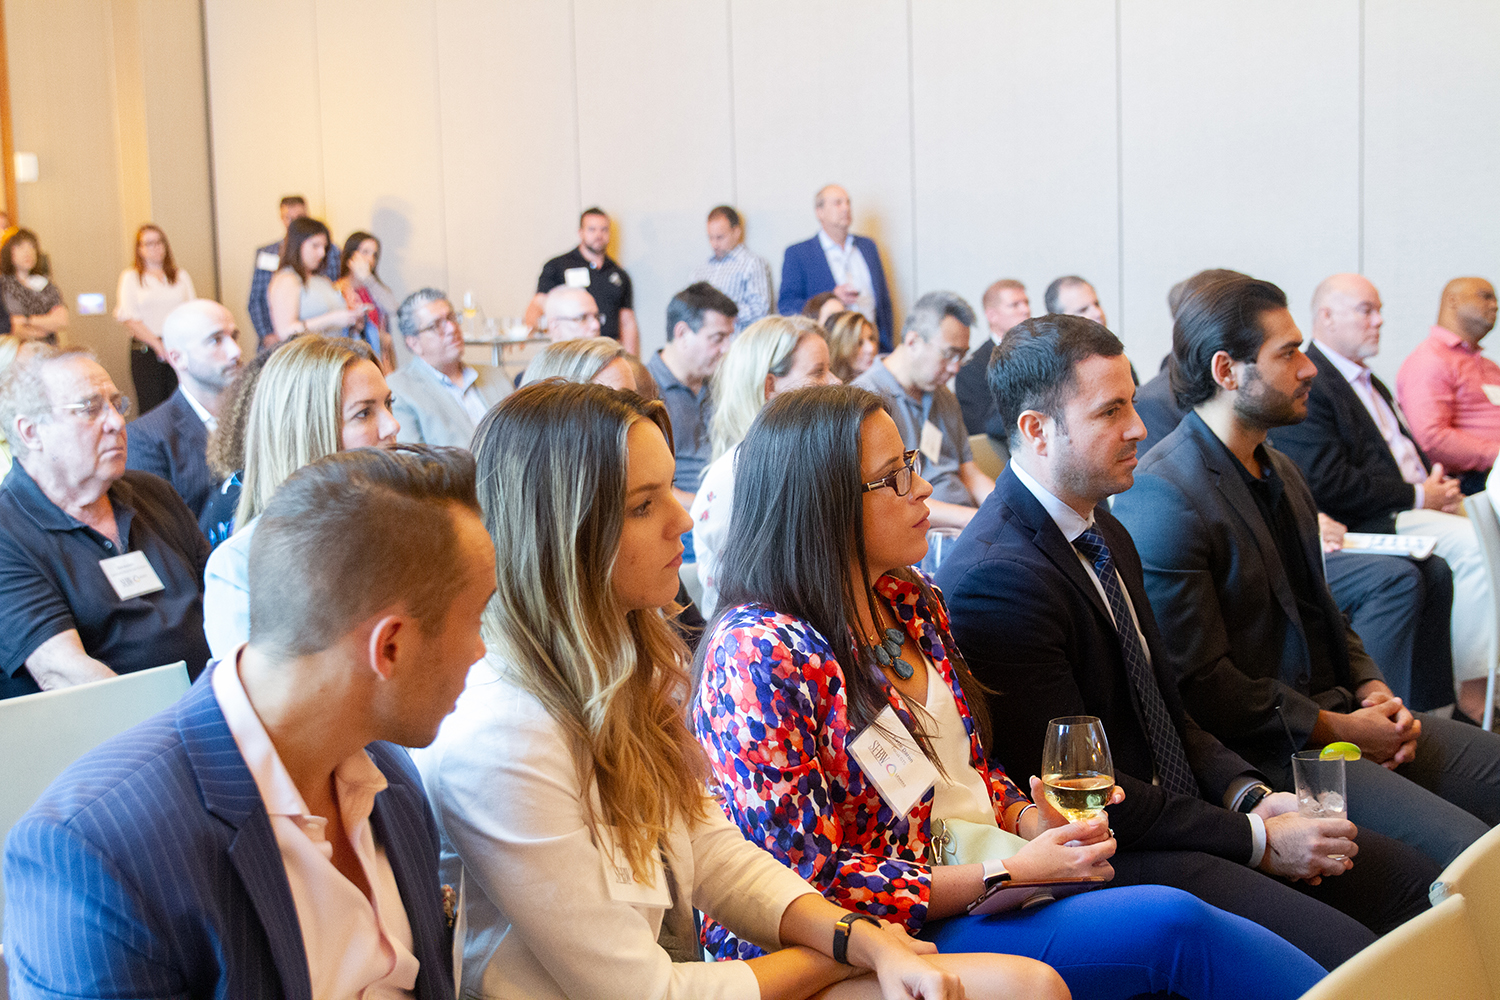 The Digital South Florida panel discussion was held at the Conrad Fort Lauderdale